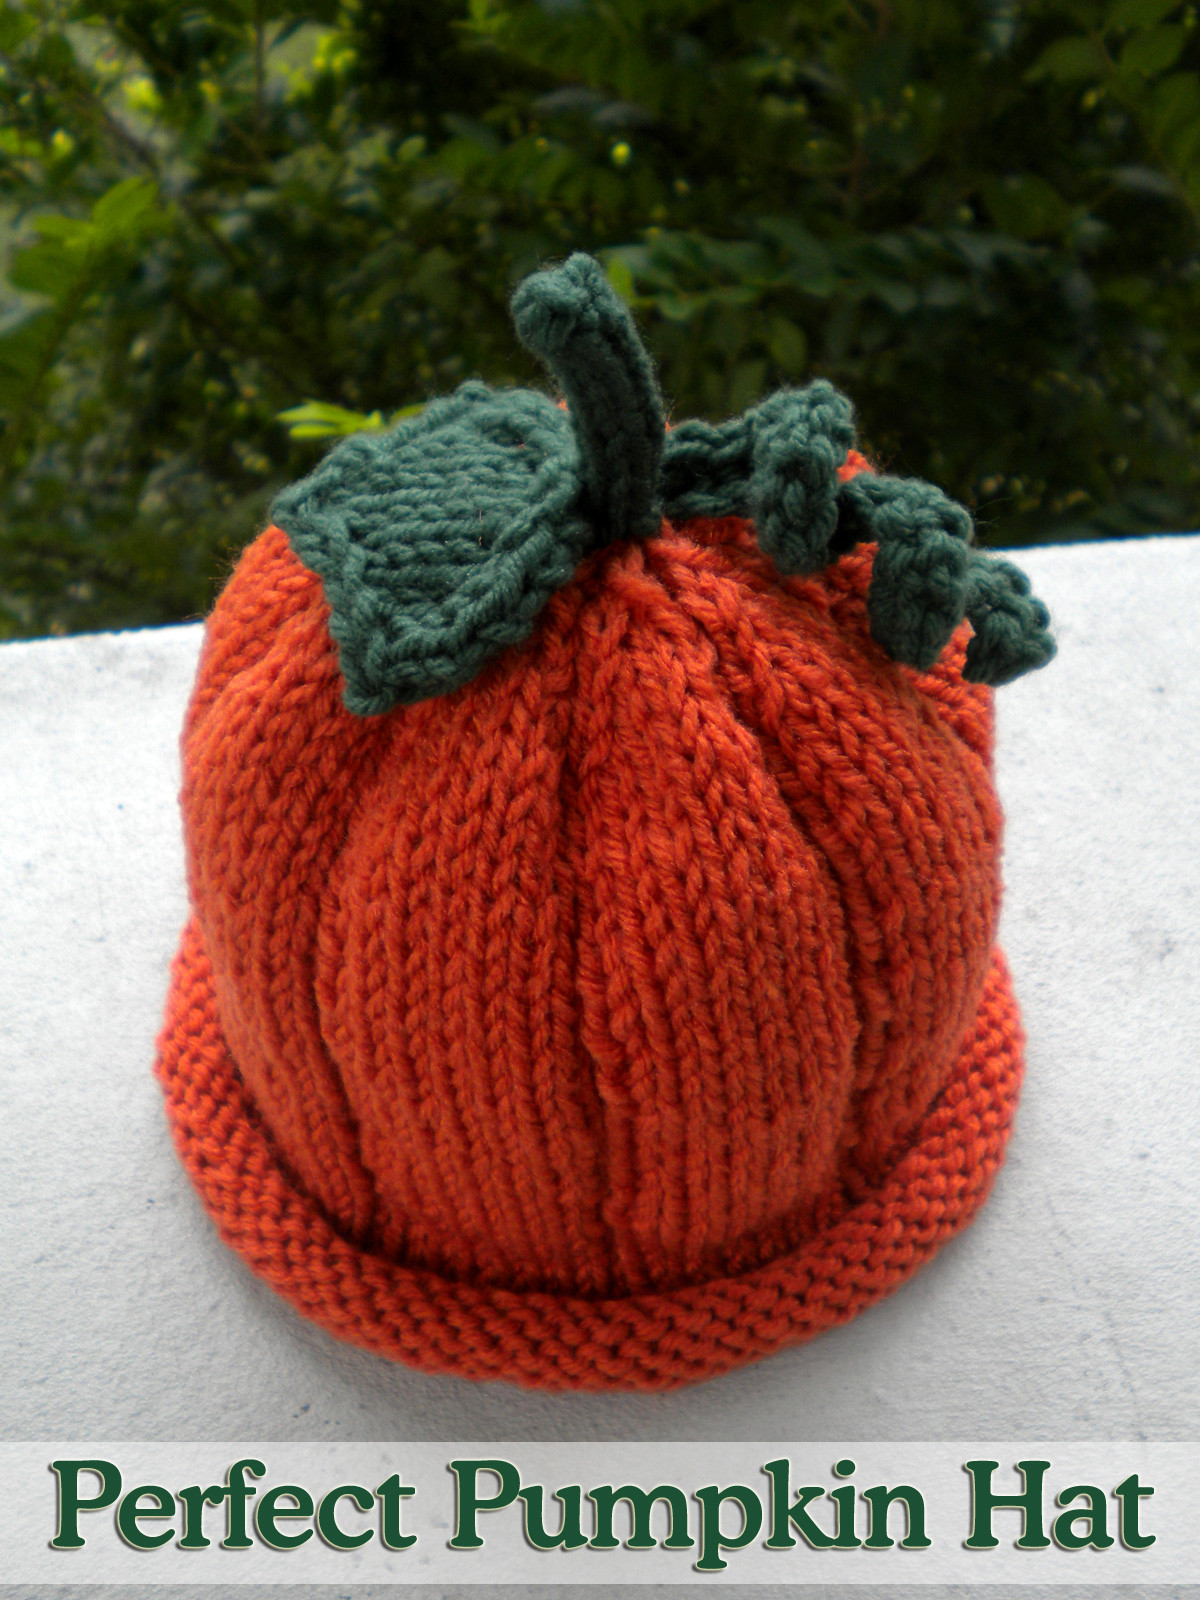 Perfect Pumpkin Hat done 2 Needles Knitting Pattern